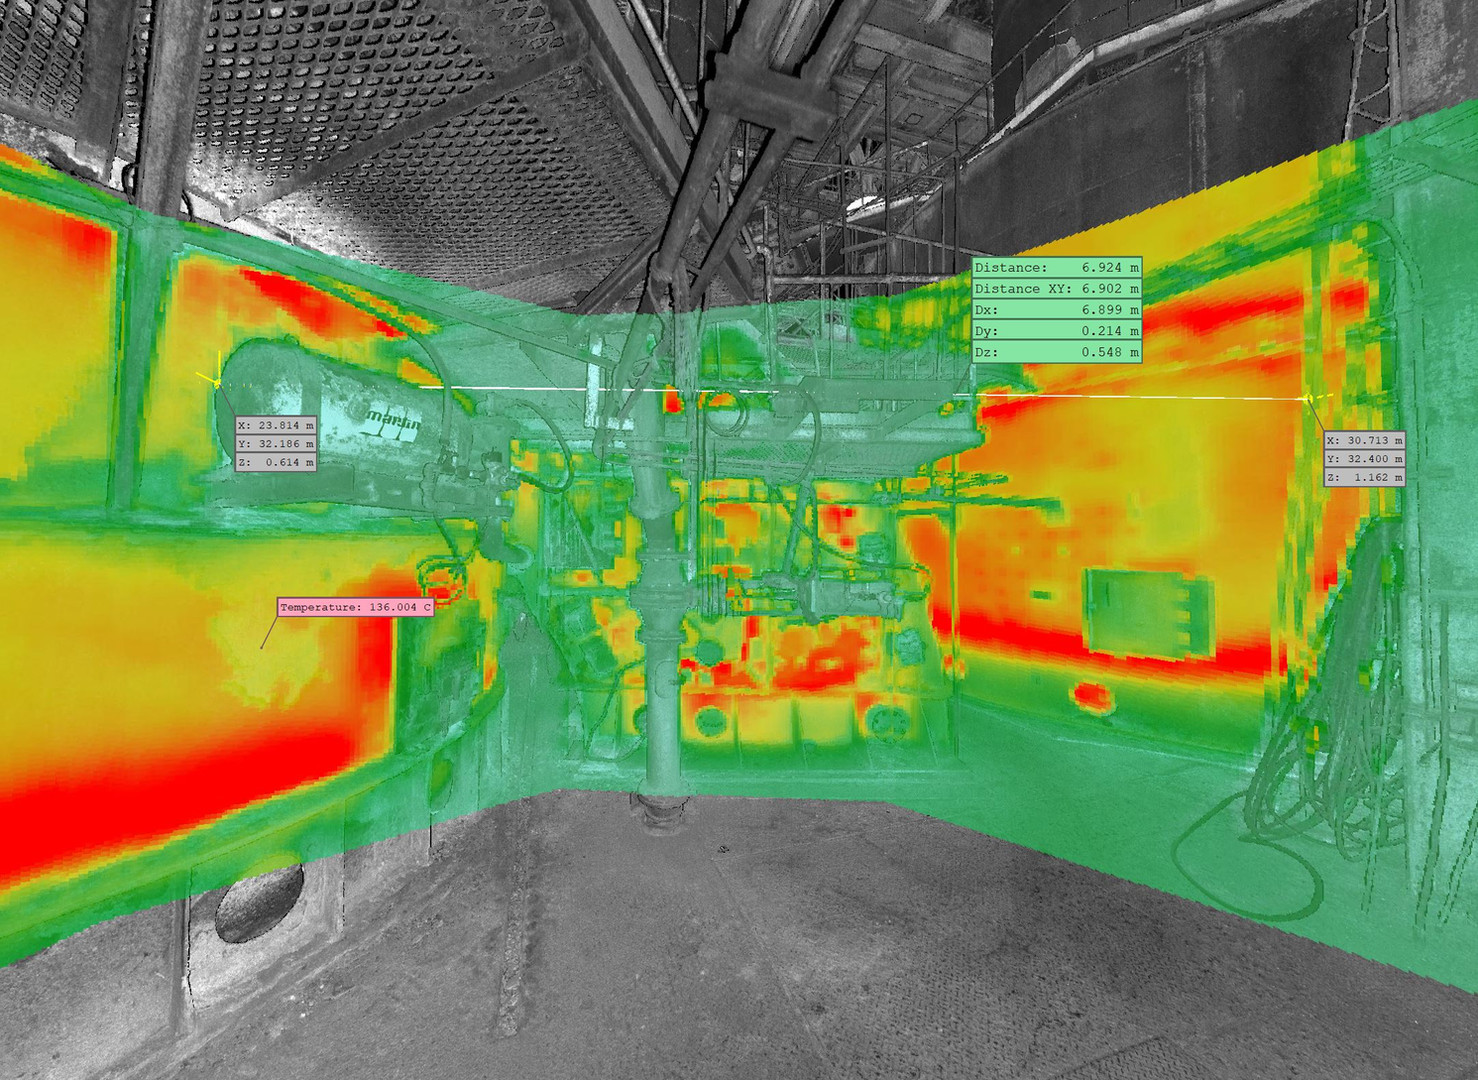 3D Thermal imaging at your facilities